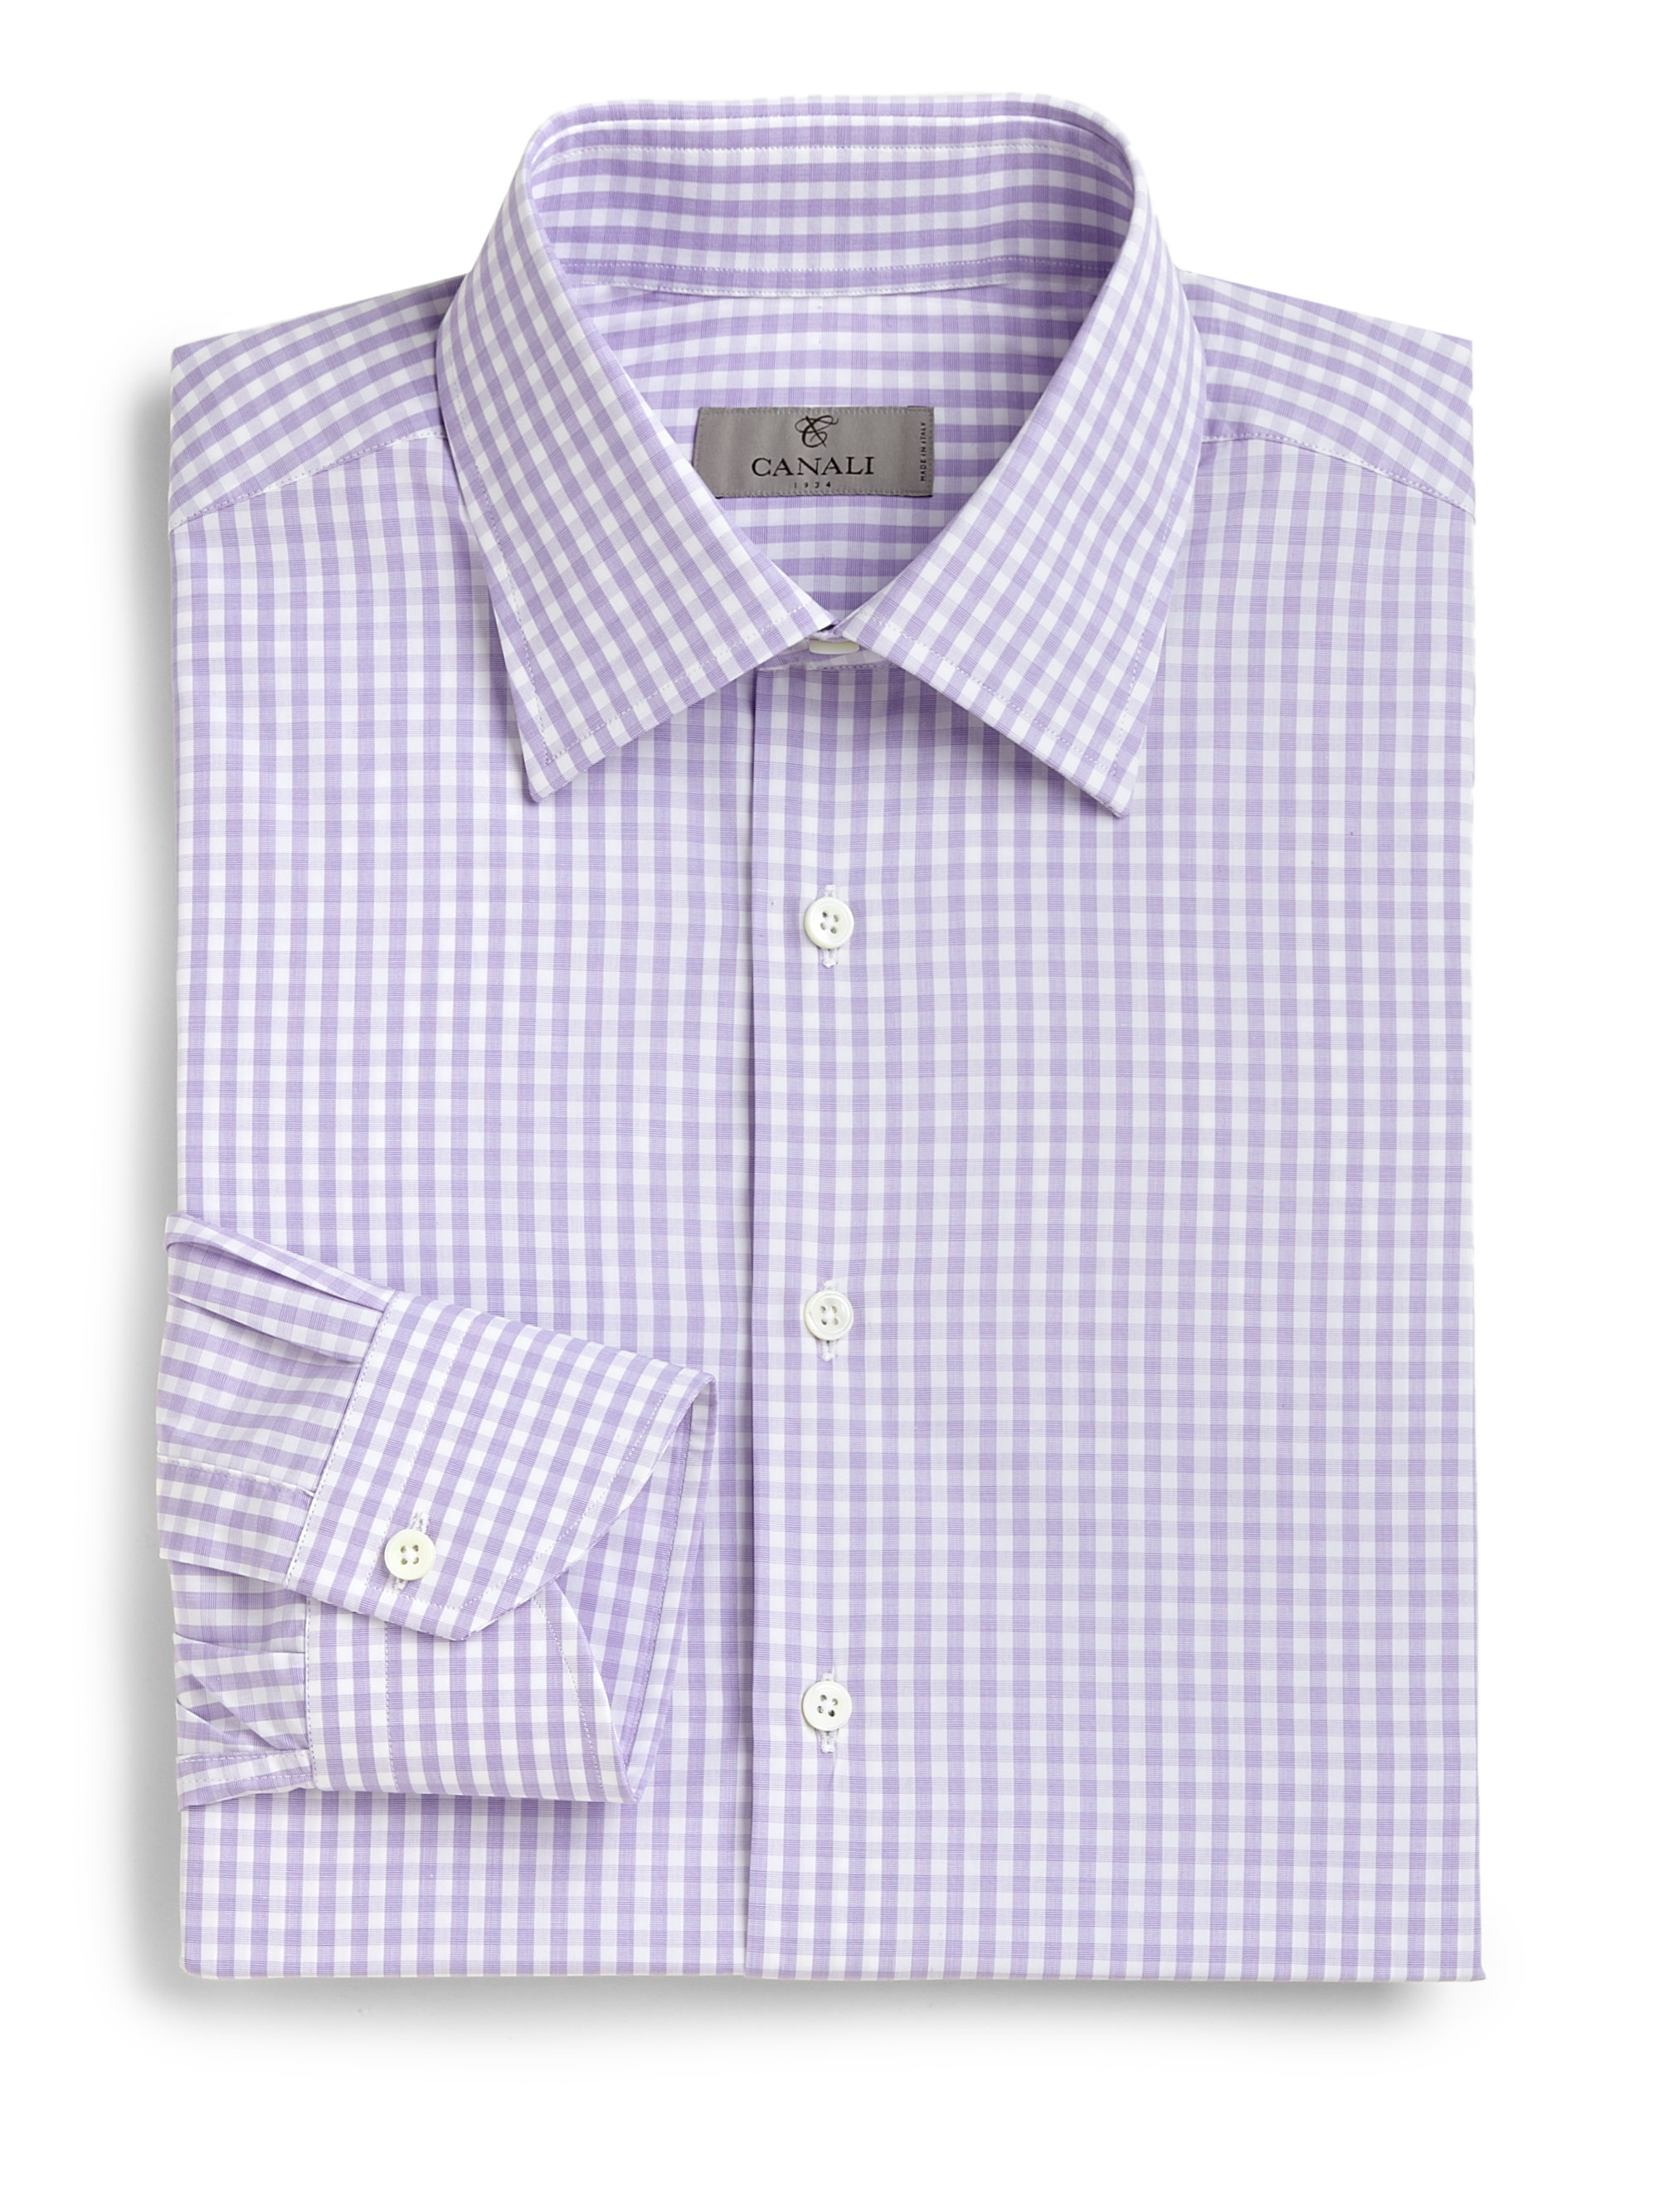 82ae0d0ec43 Canali Regular-Fit Gingham Dress Shirt in Purple for Men - Lyst